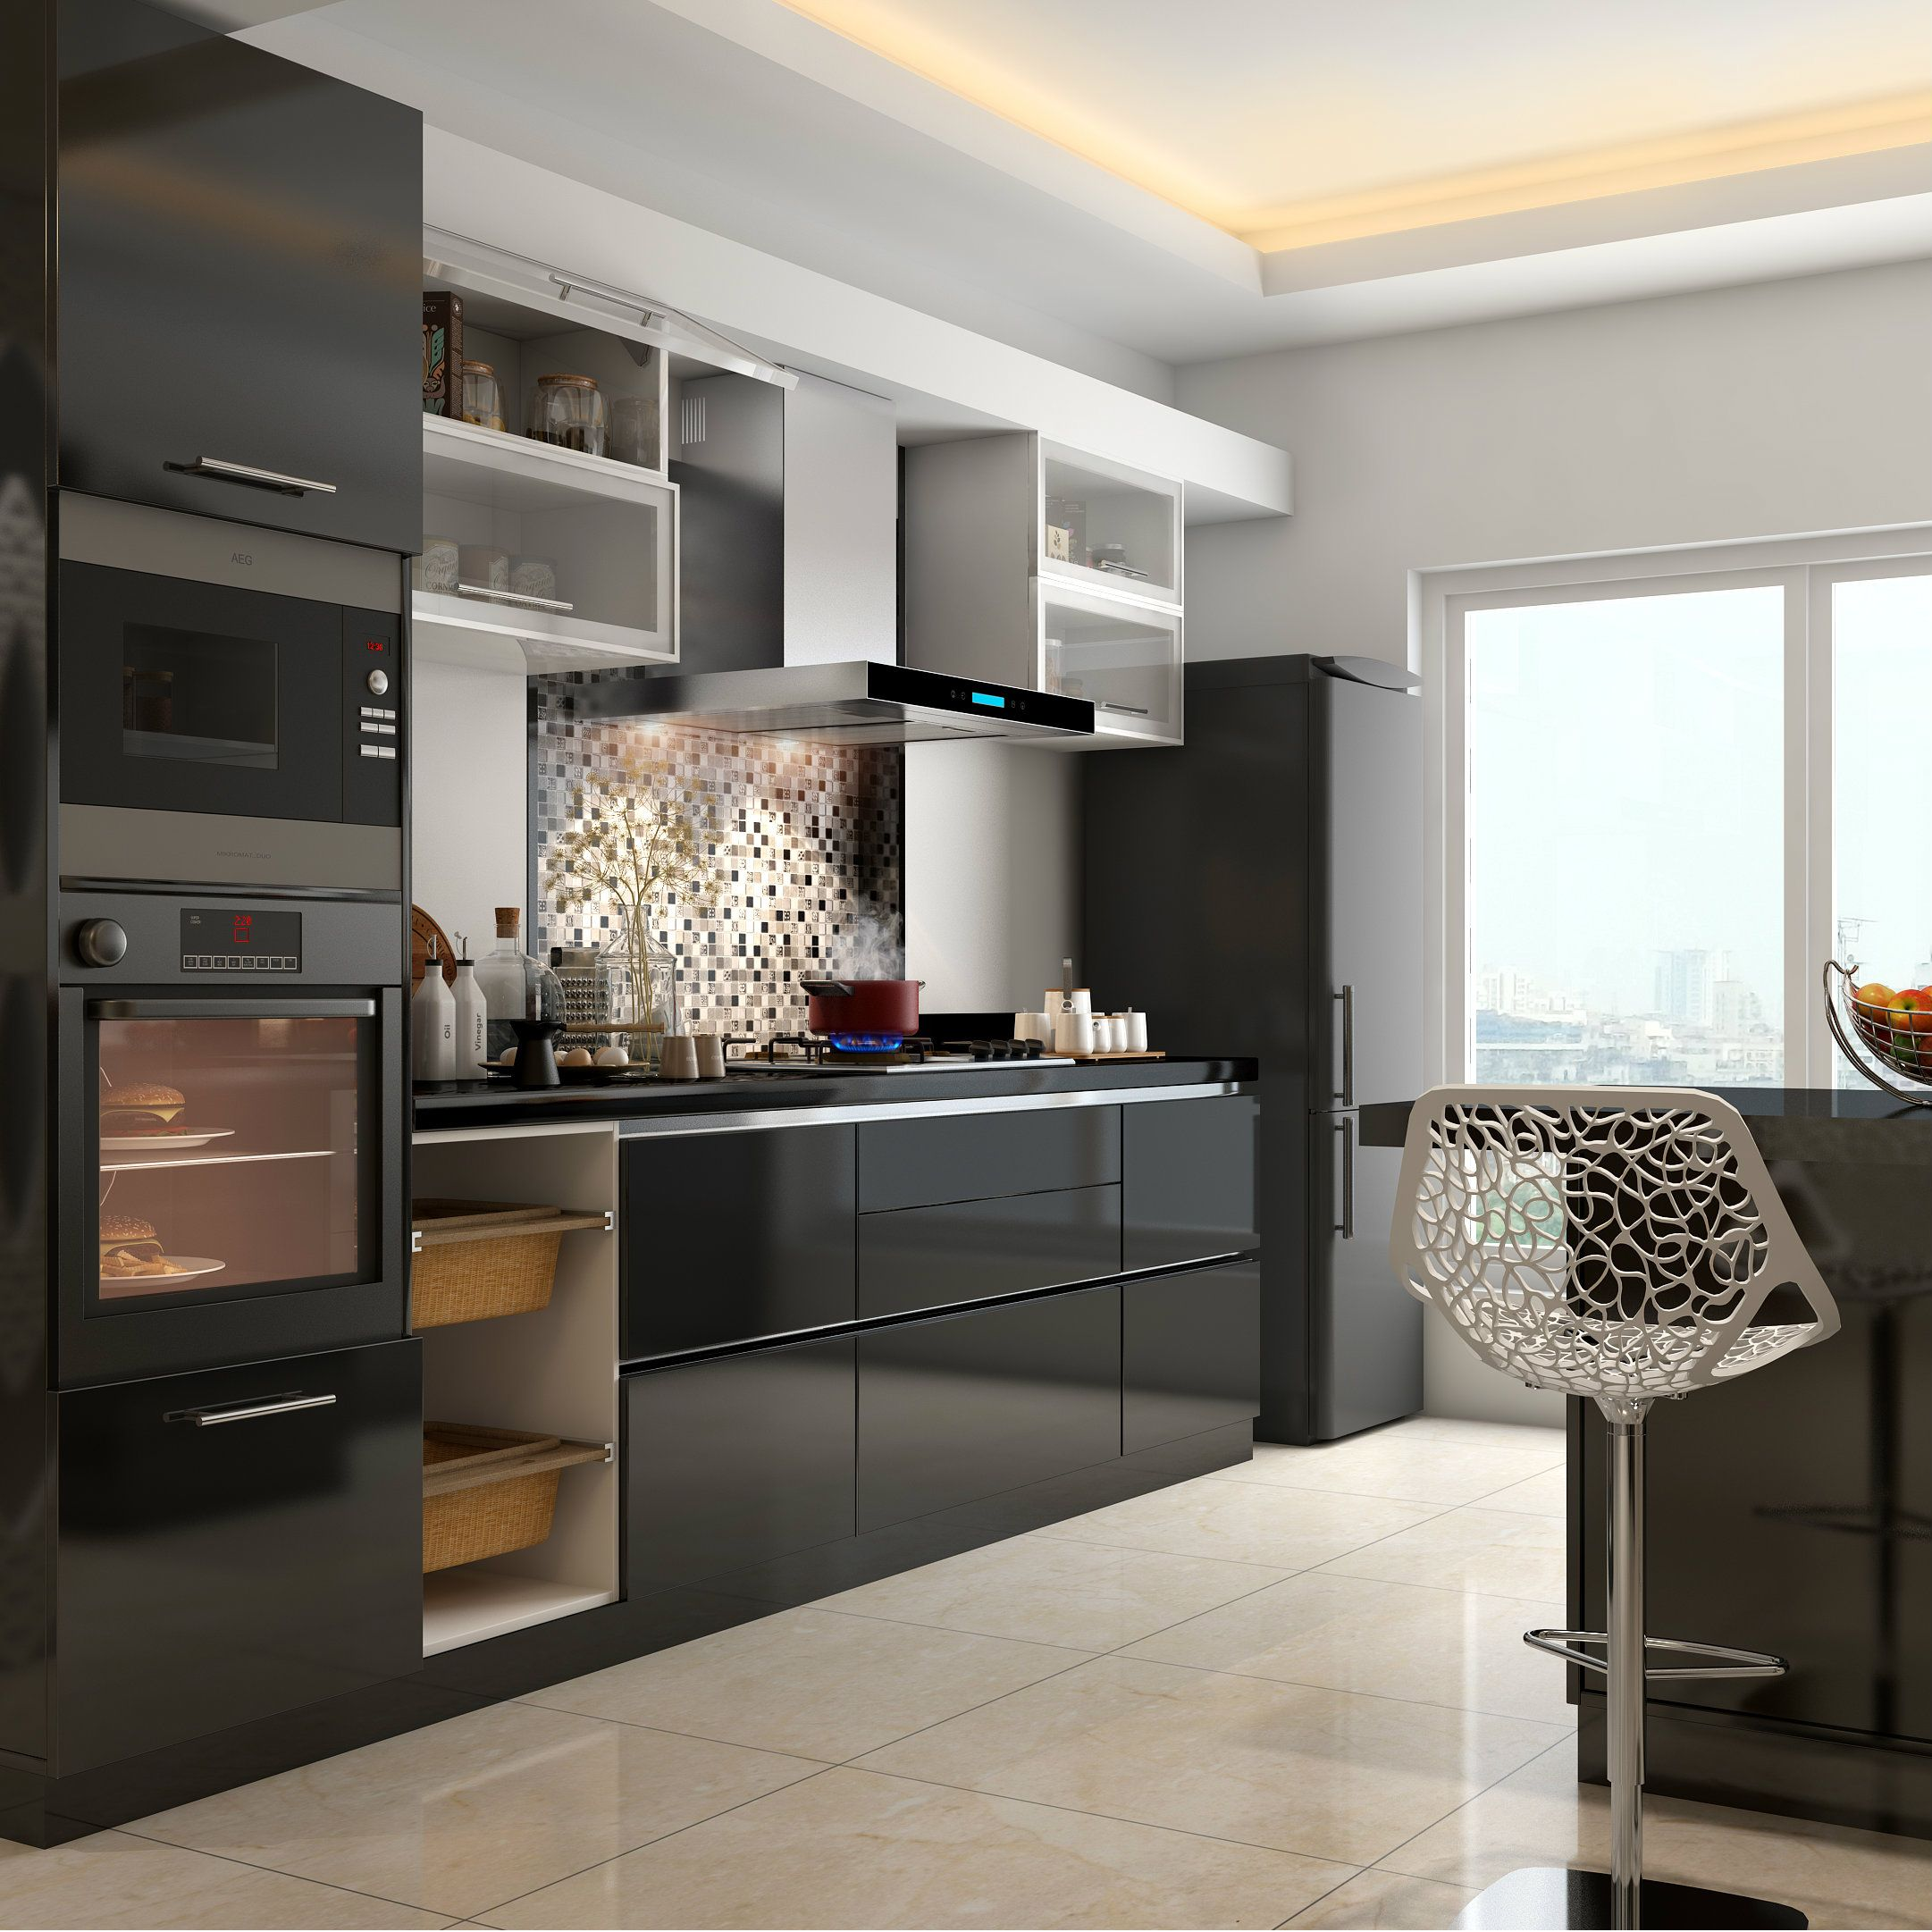 A Sleek Black Modular Kitchen With Built In Appliances Modular